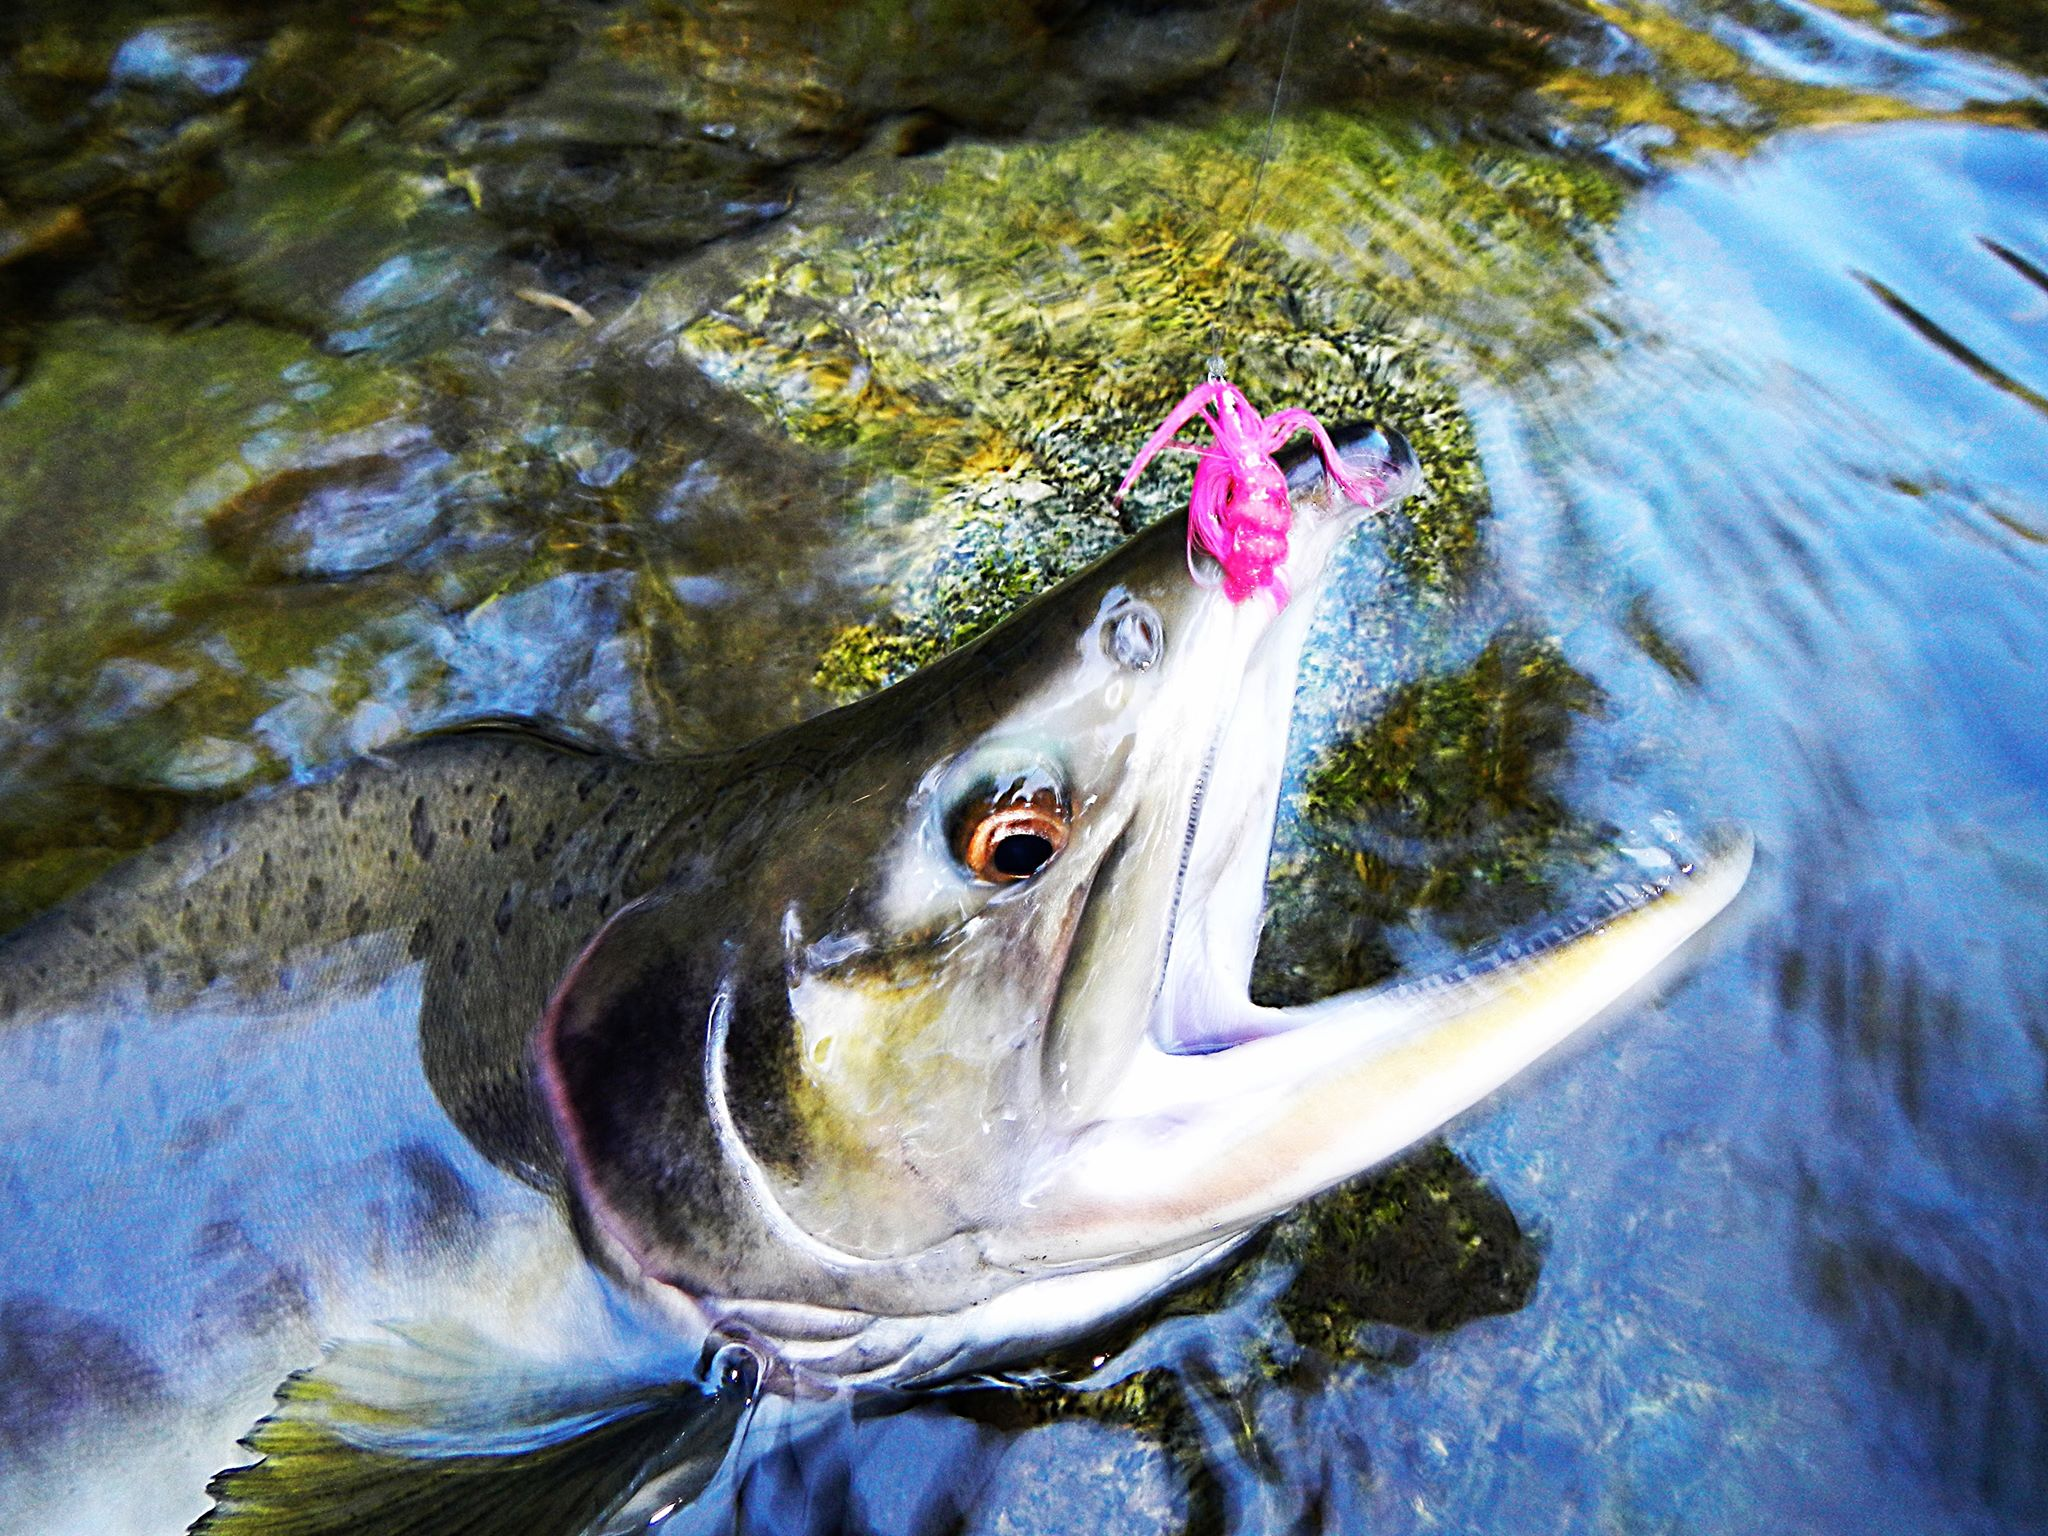 Tenkara simple fly fishing method from Japan uses only a 2048x1536